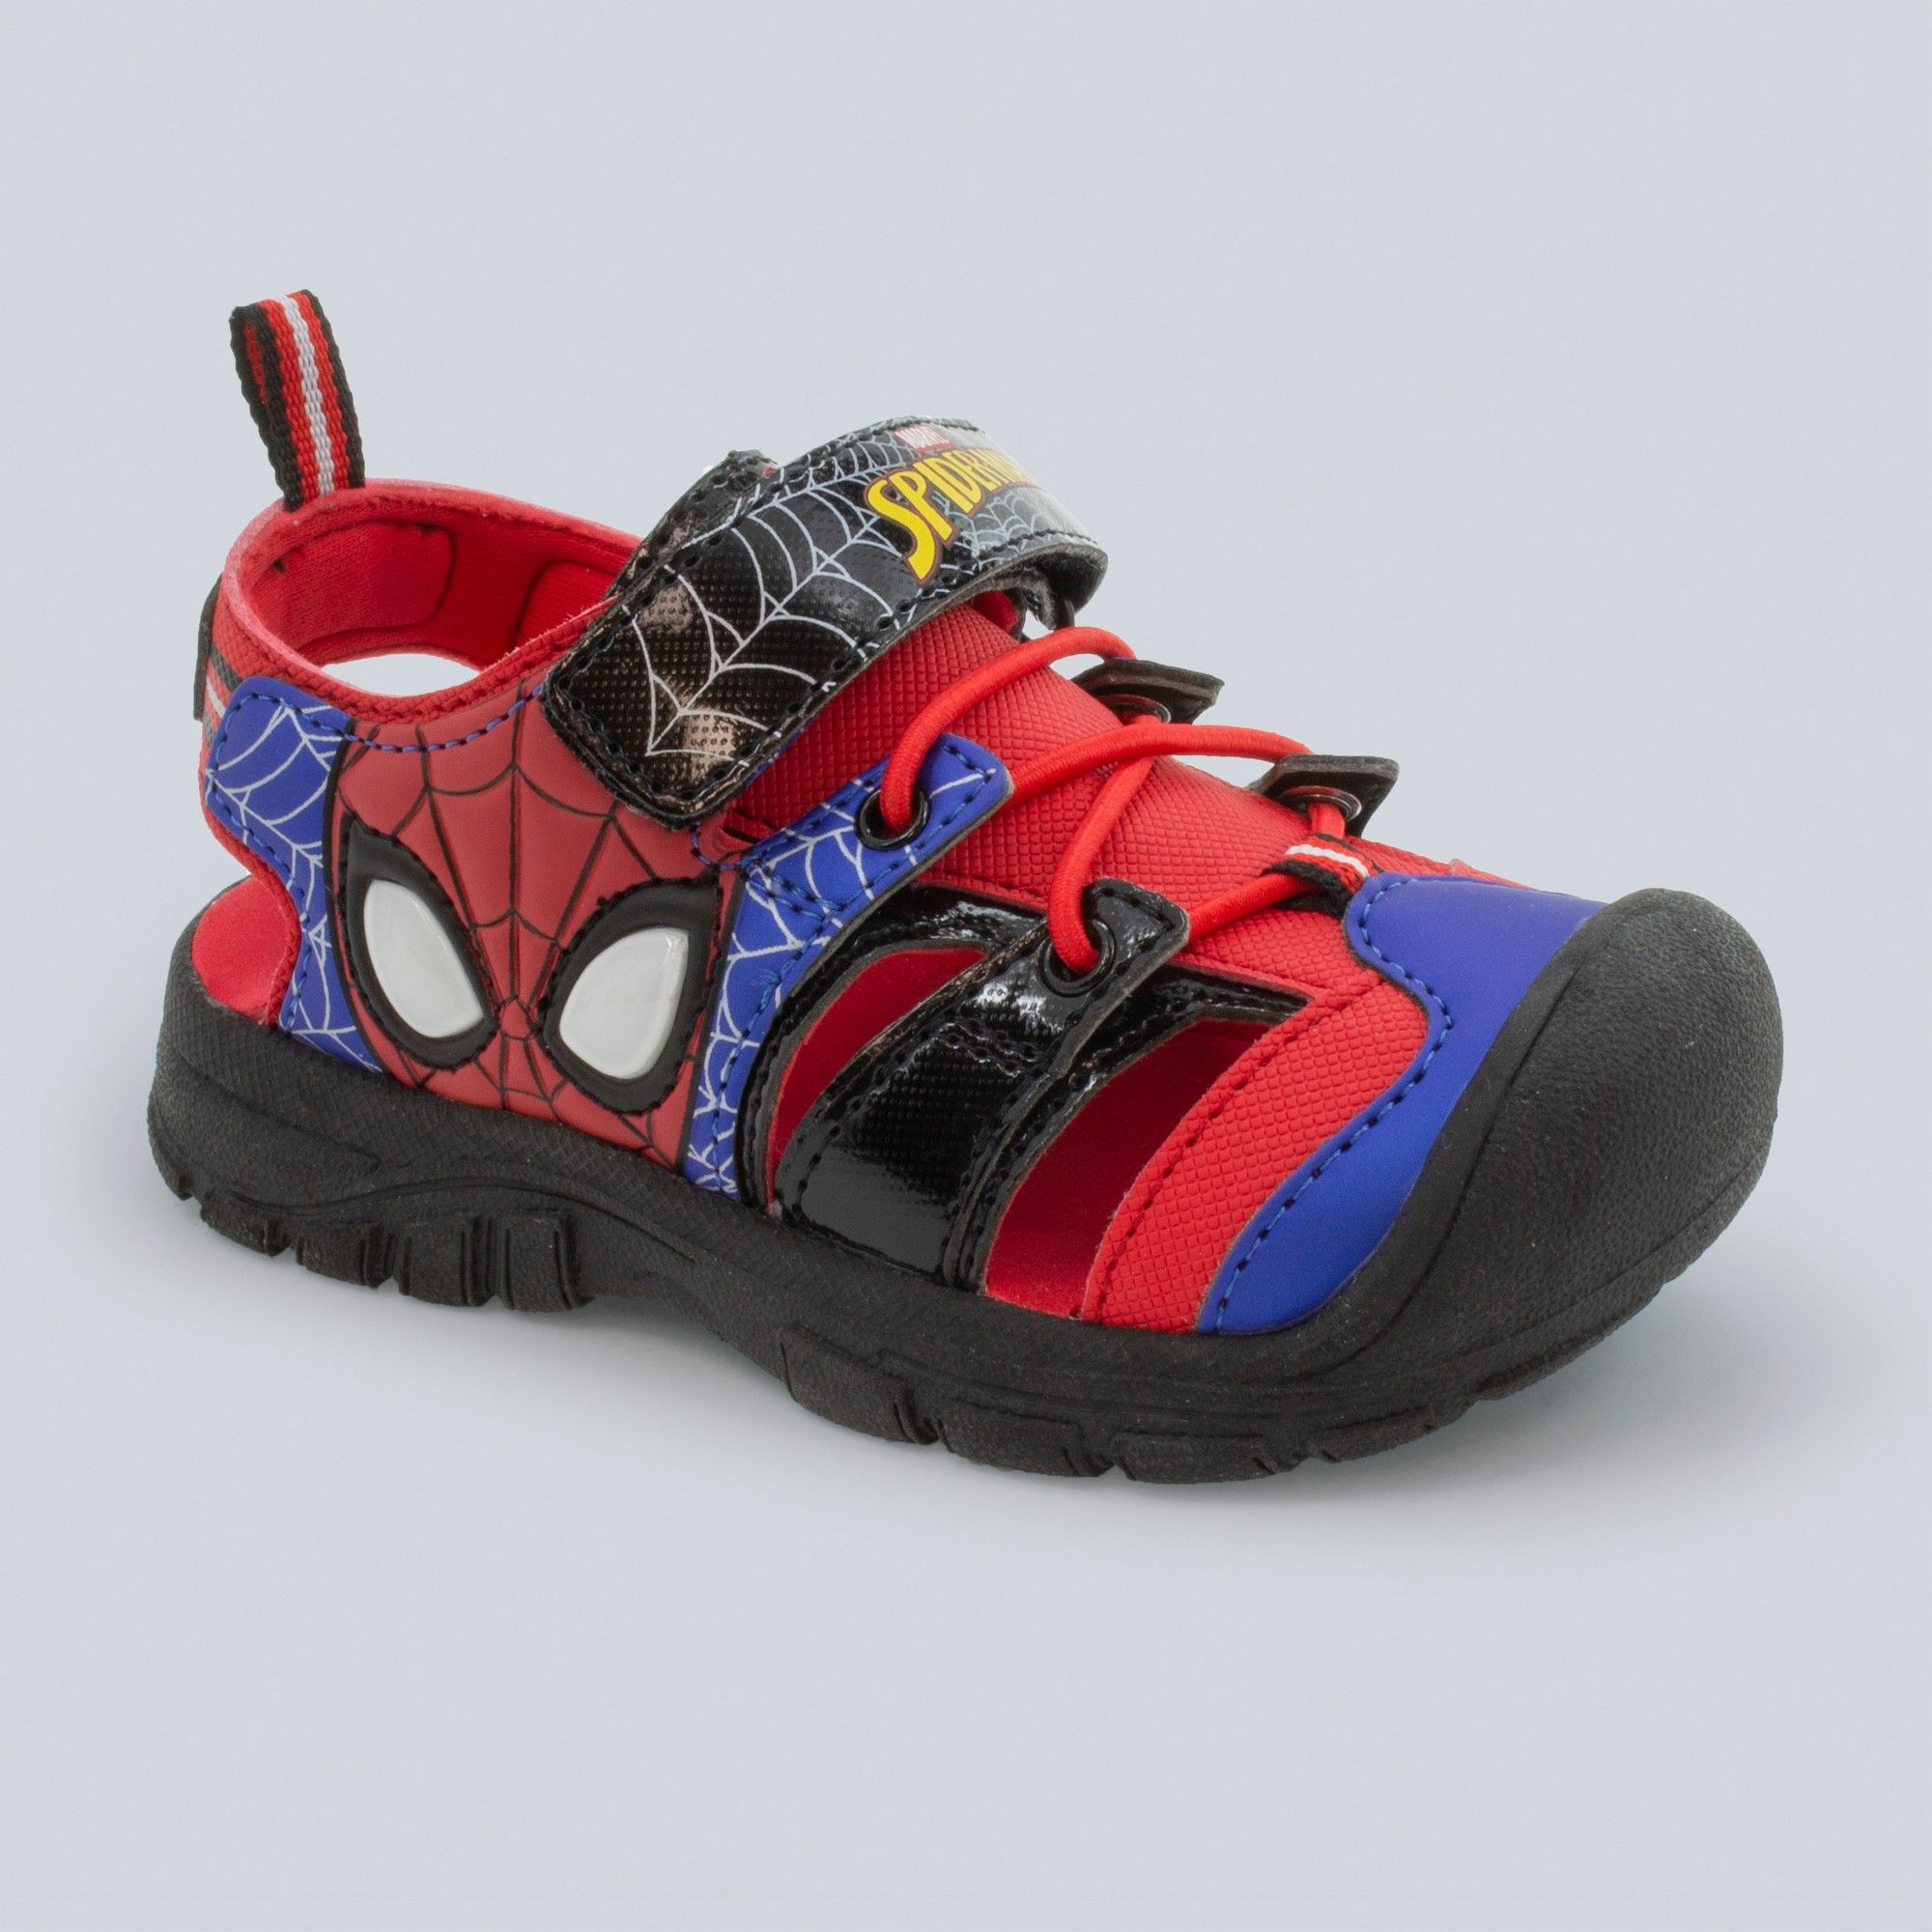 Marvel® Spider Man Kids Boys Sandals Beach Slippers Shoes UK Sizes 5 to 1